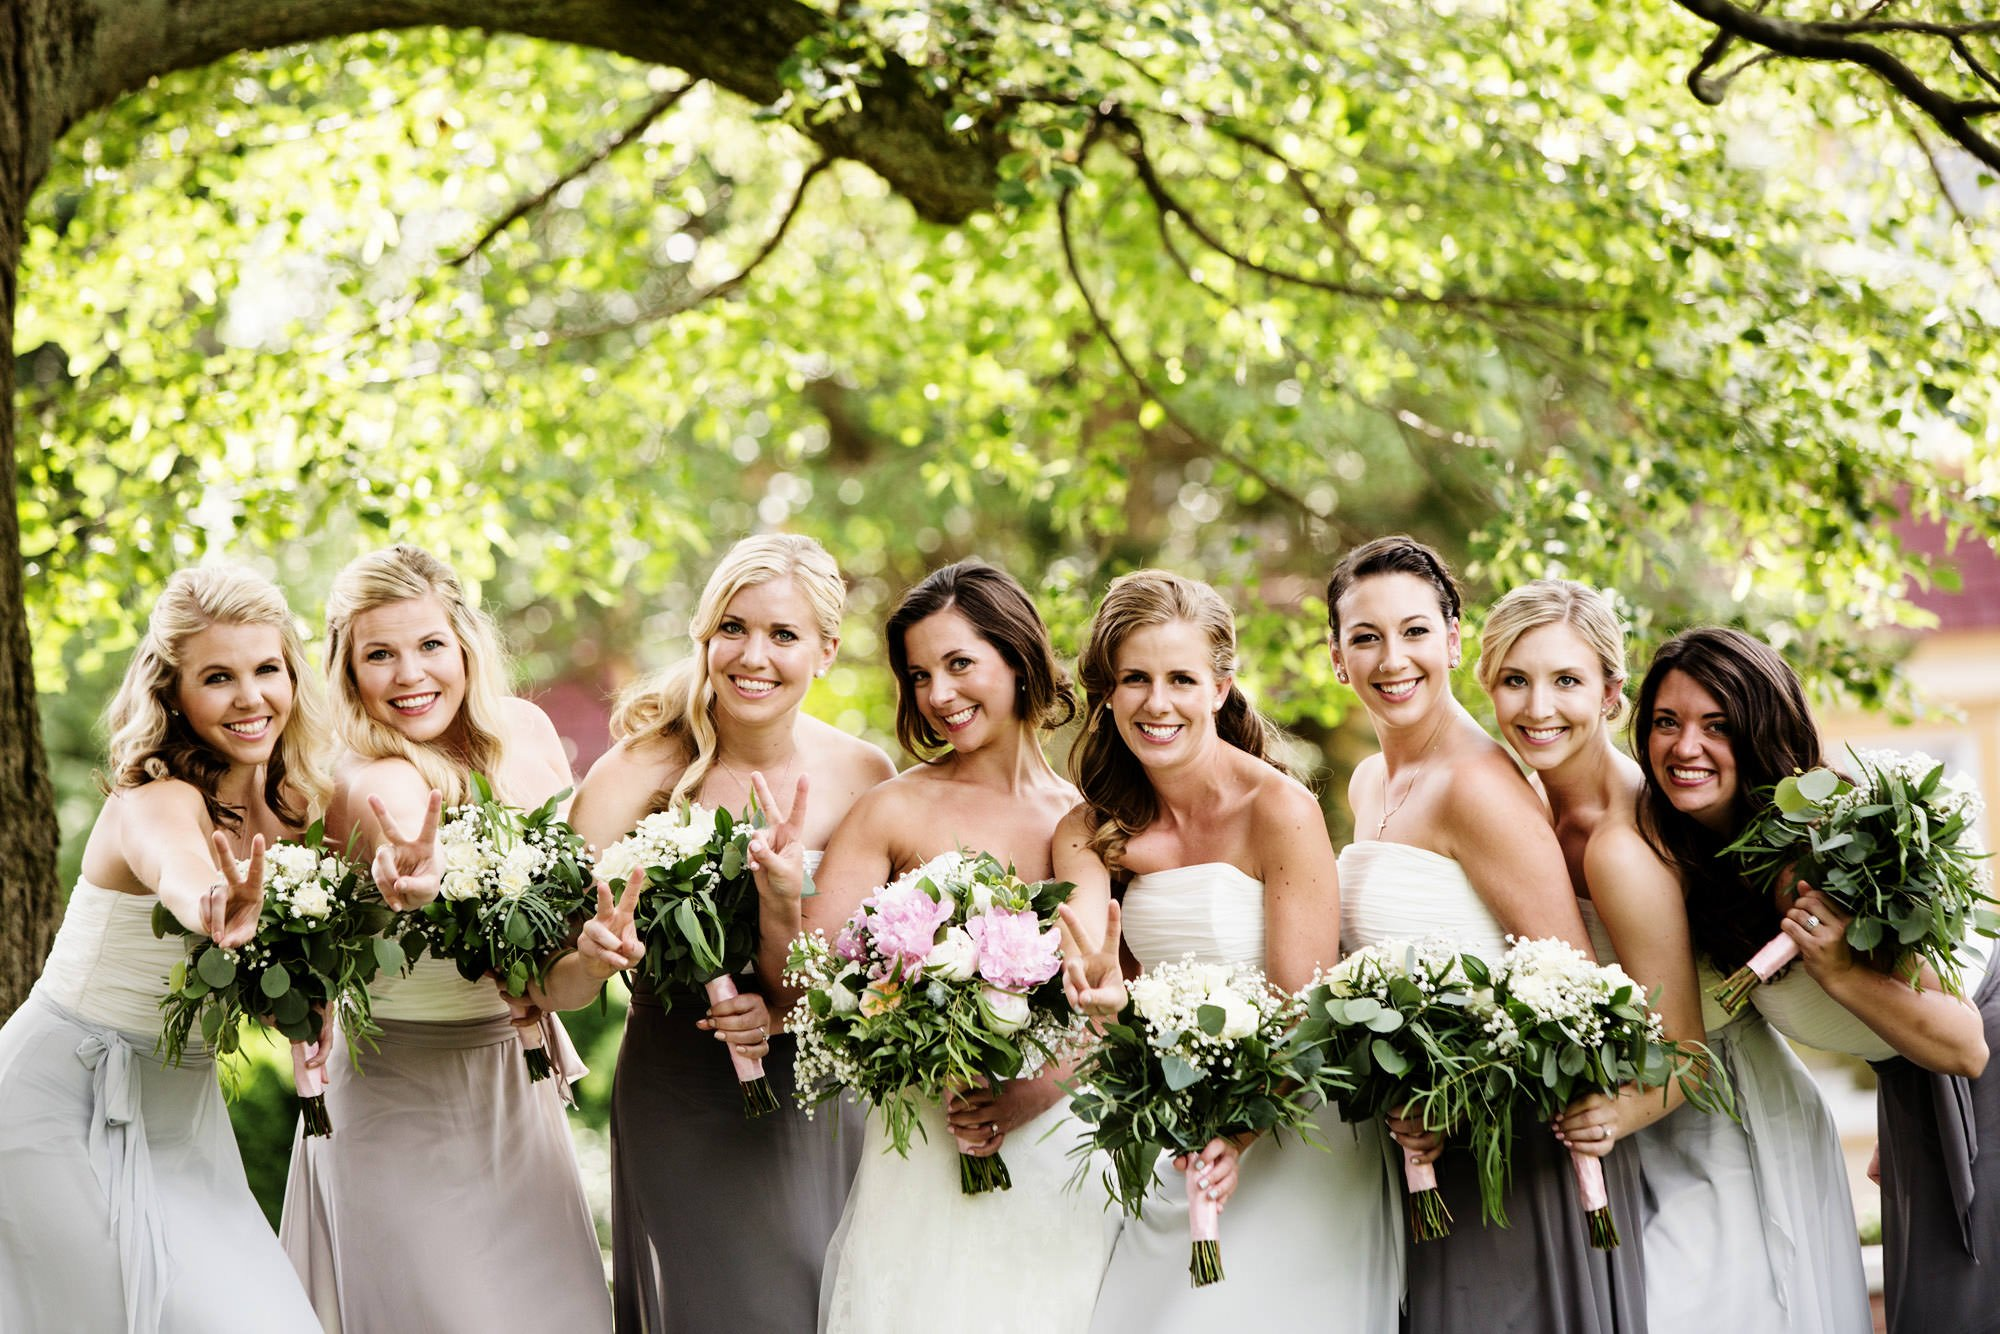 A portrait of the bridal party.